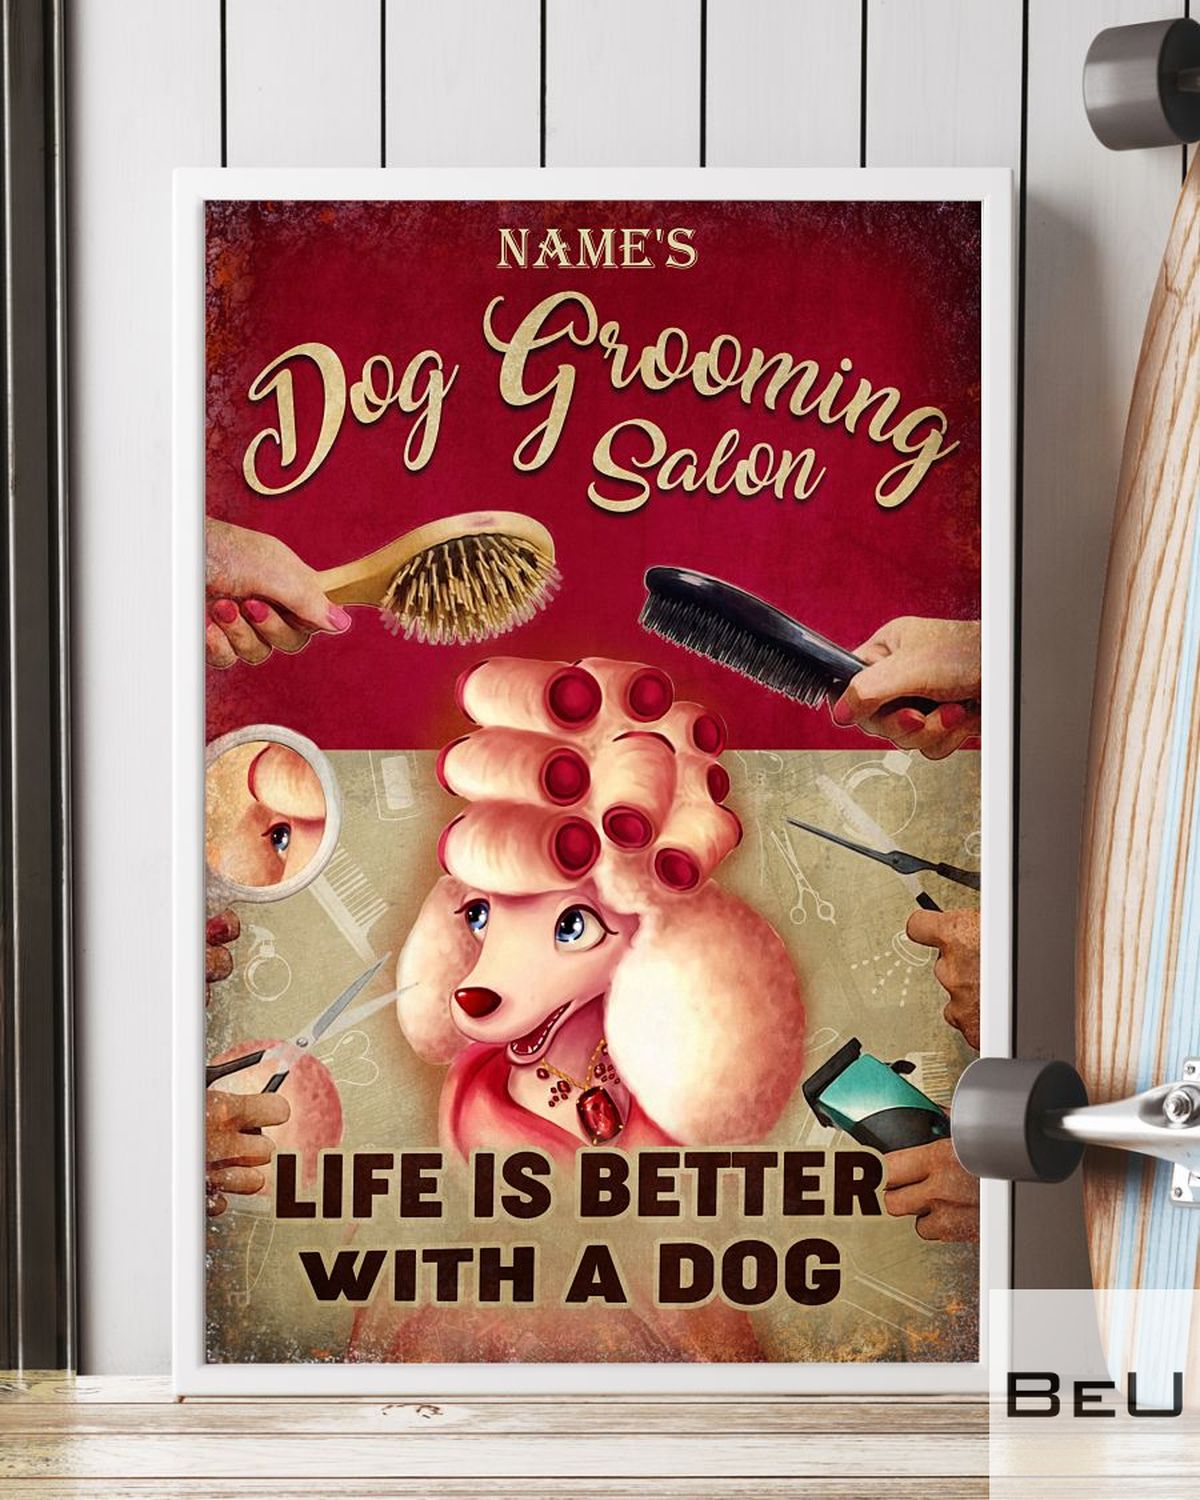 Personalized Dog Gooming Salon Life Is Better With A Dog Posterx